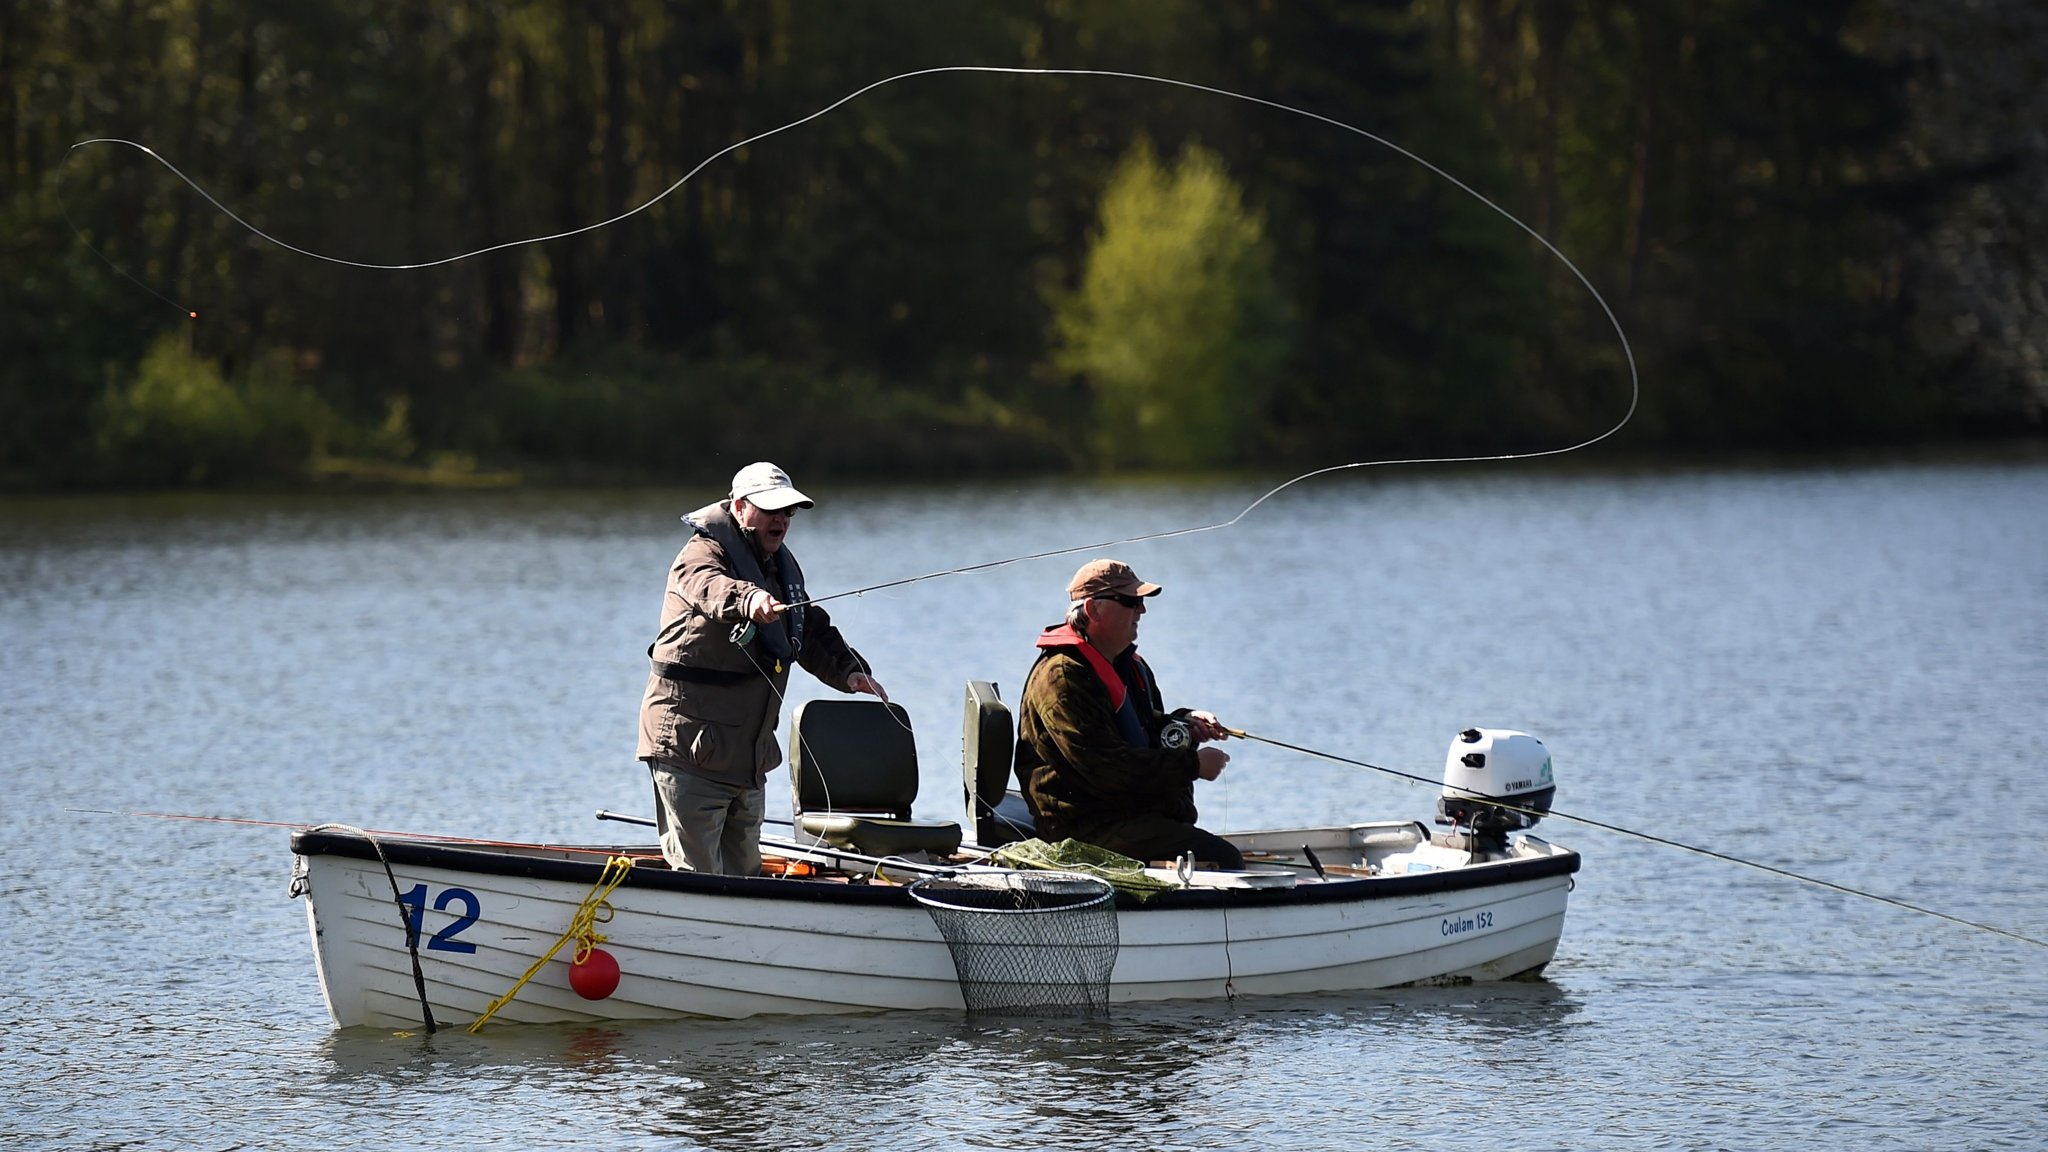 Gone fishing, while casting an eye over investments